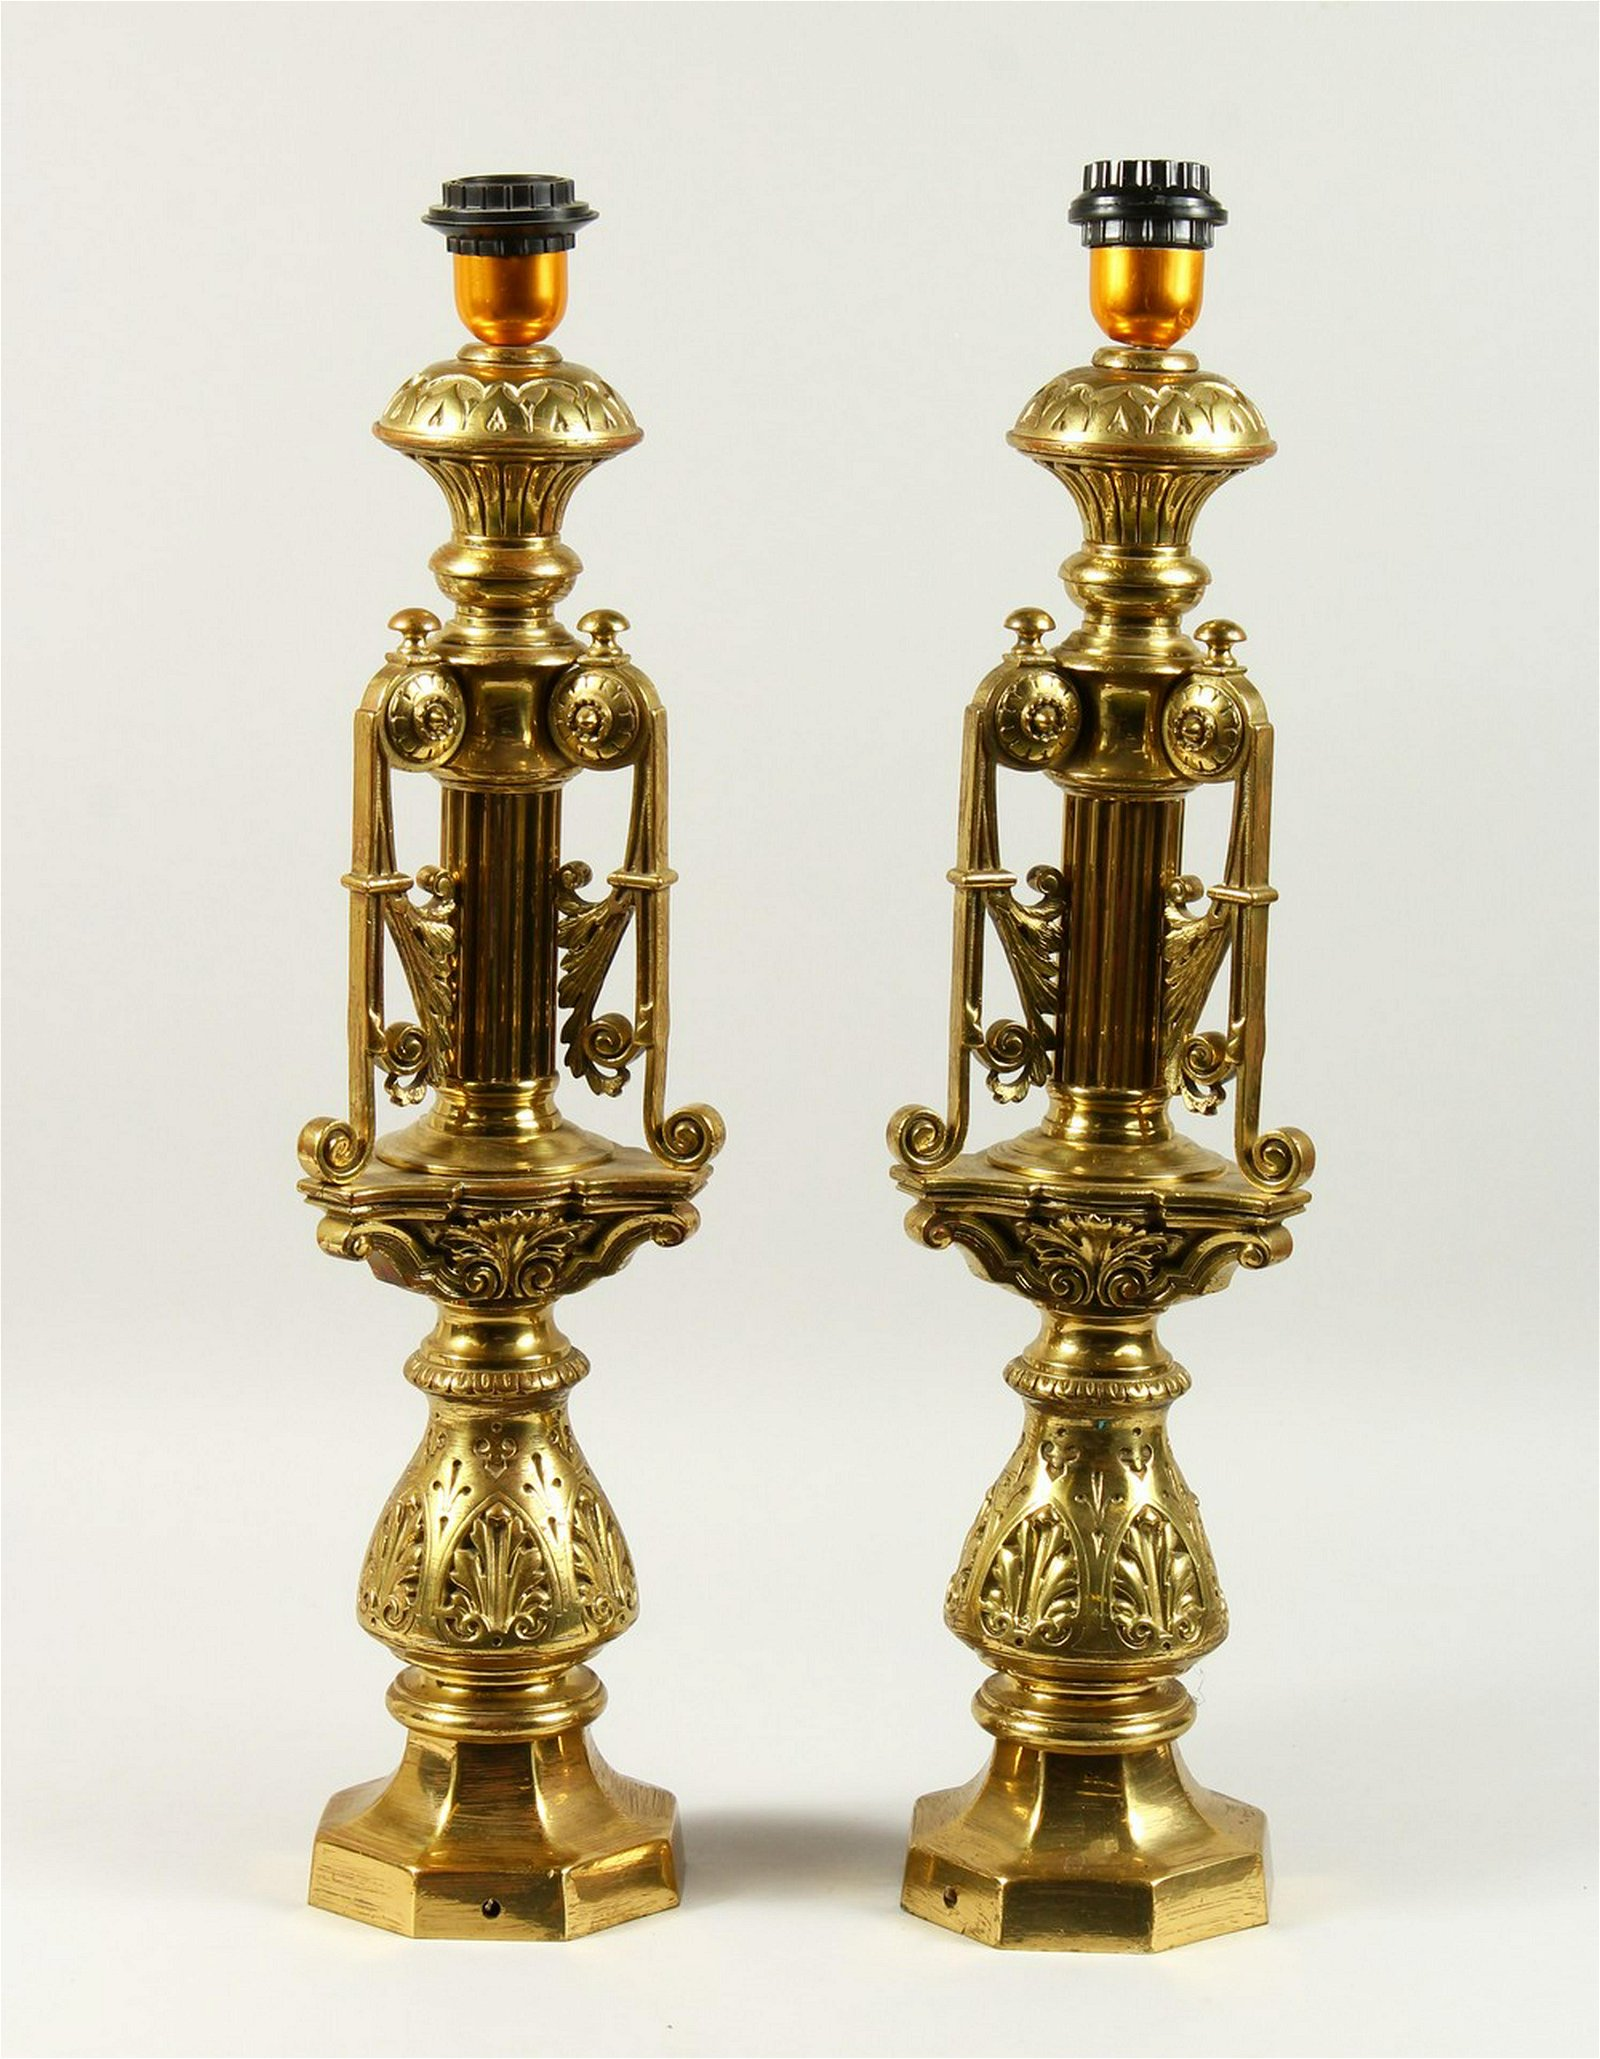 A PAIR OF 20TH CENTURY ORNATE CAST BRASS TABLE LAMPS.